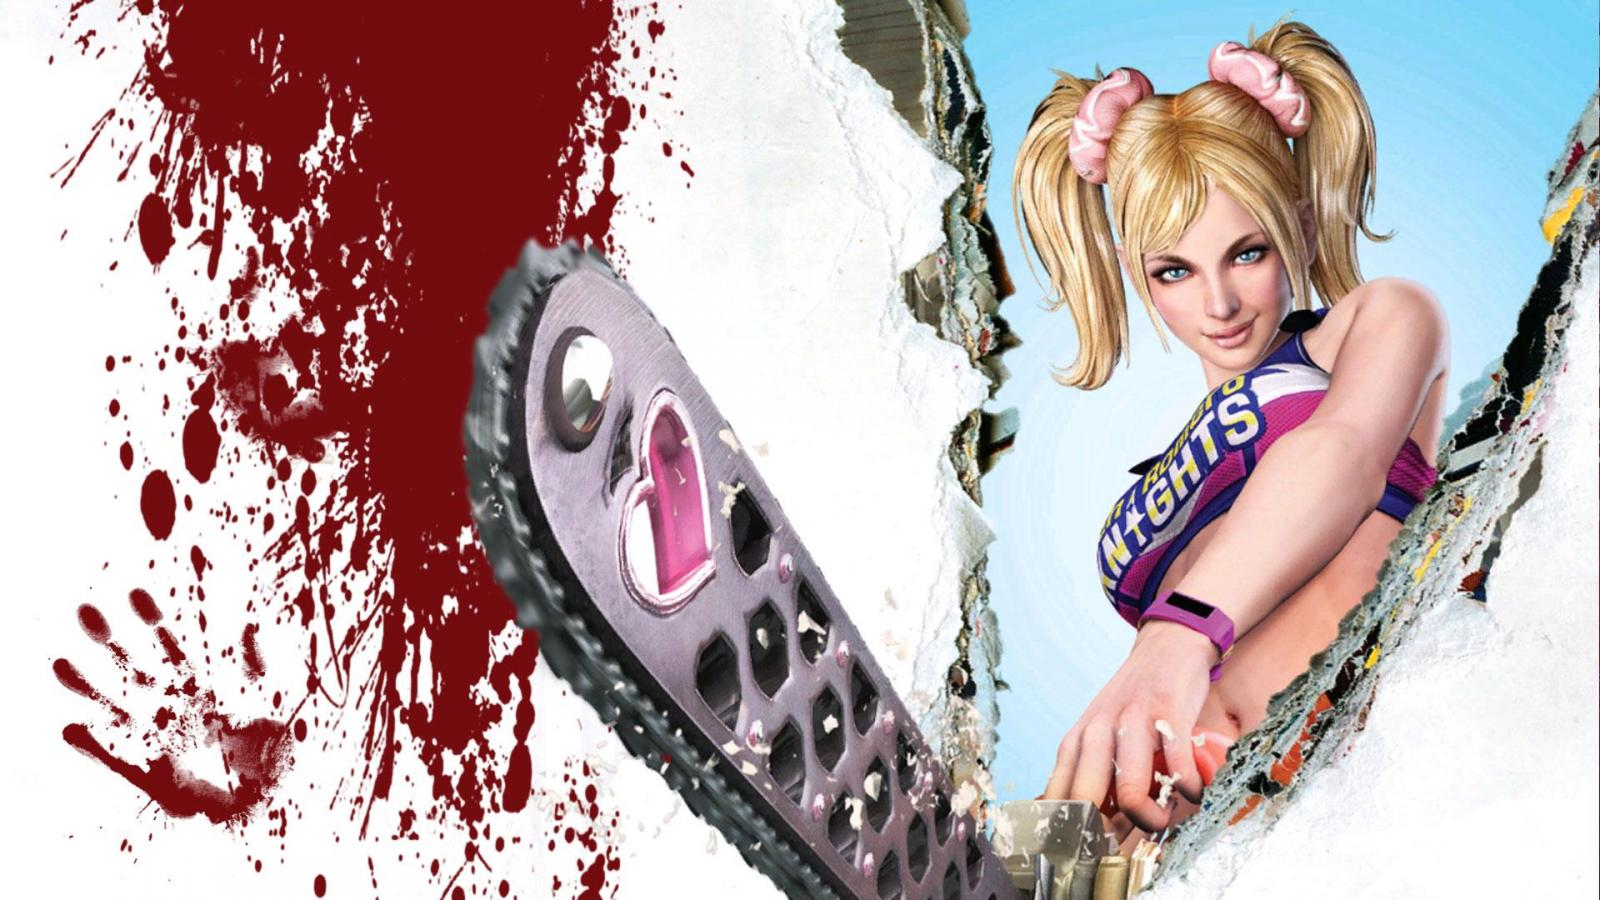 7407-female-knight-lollipop-chainsaw-hd-wallpaper-1600x900